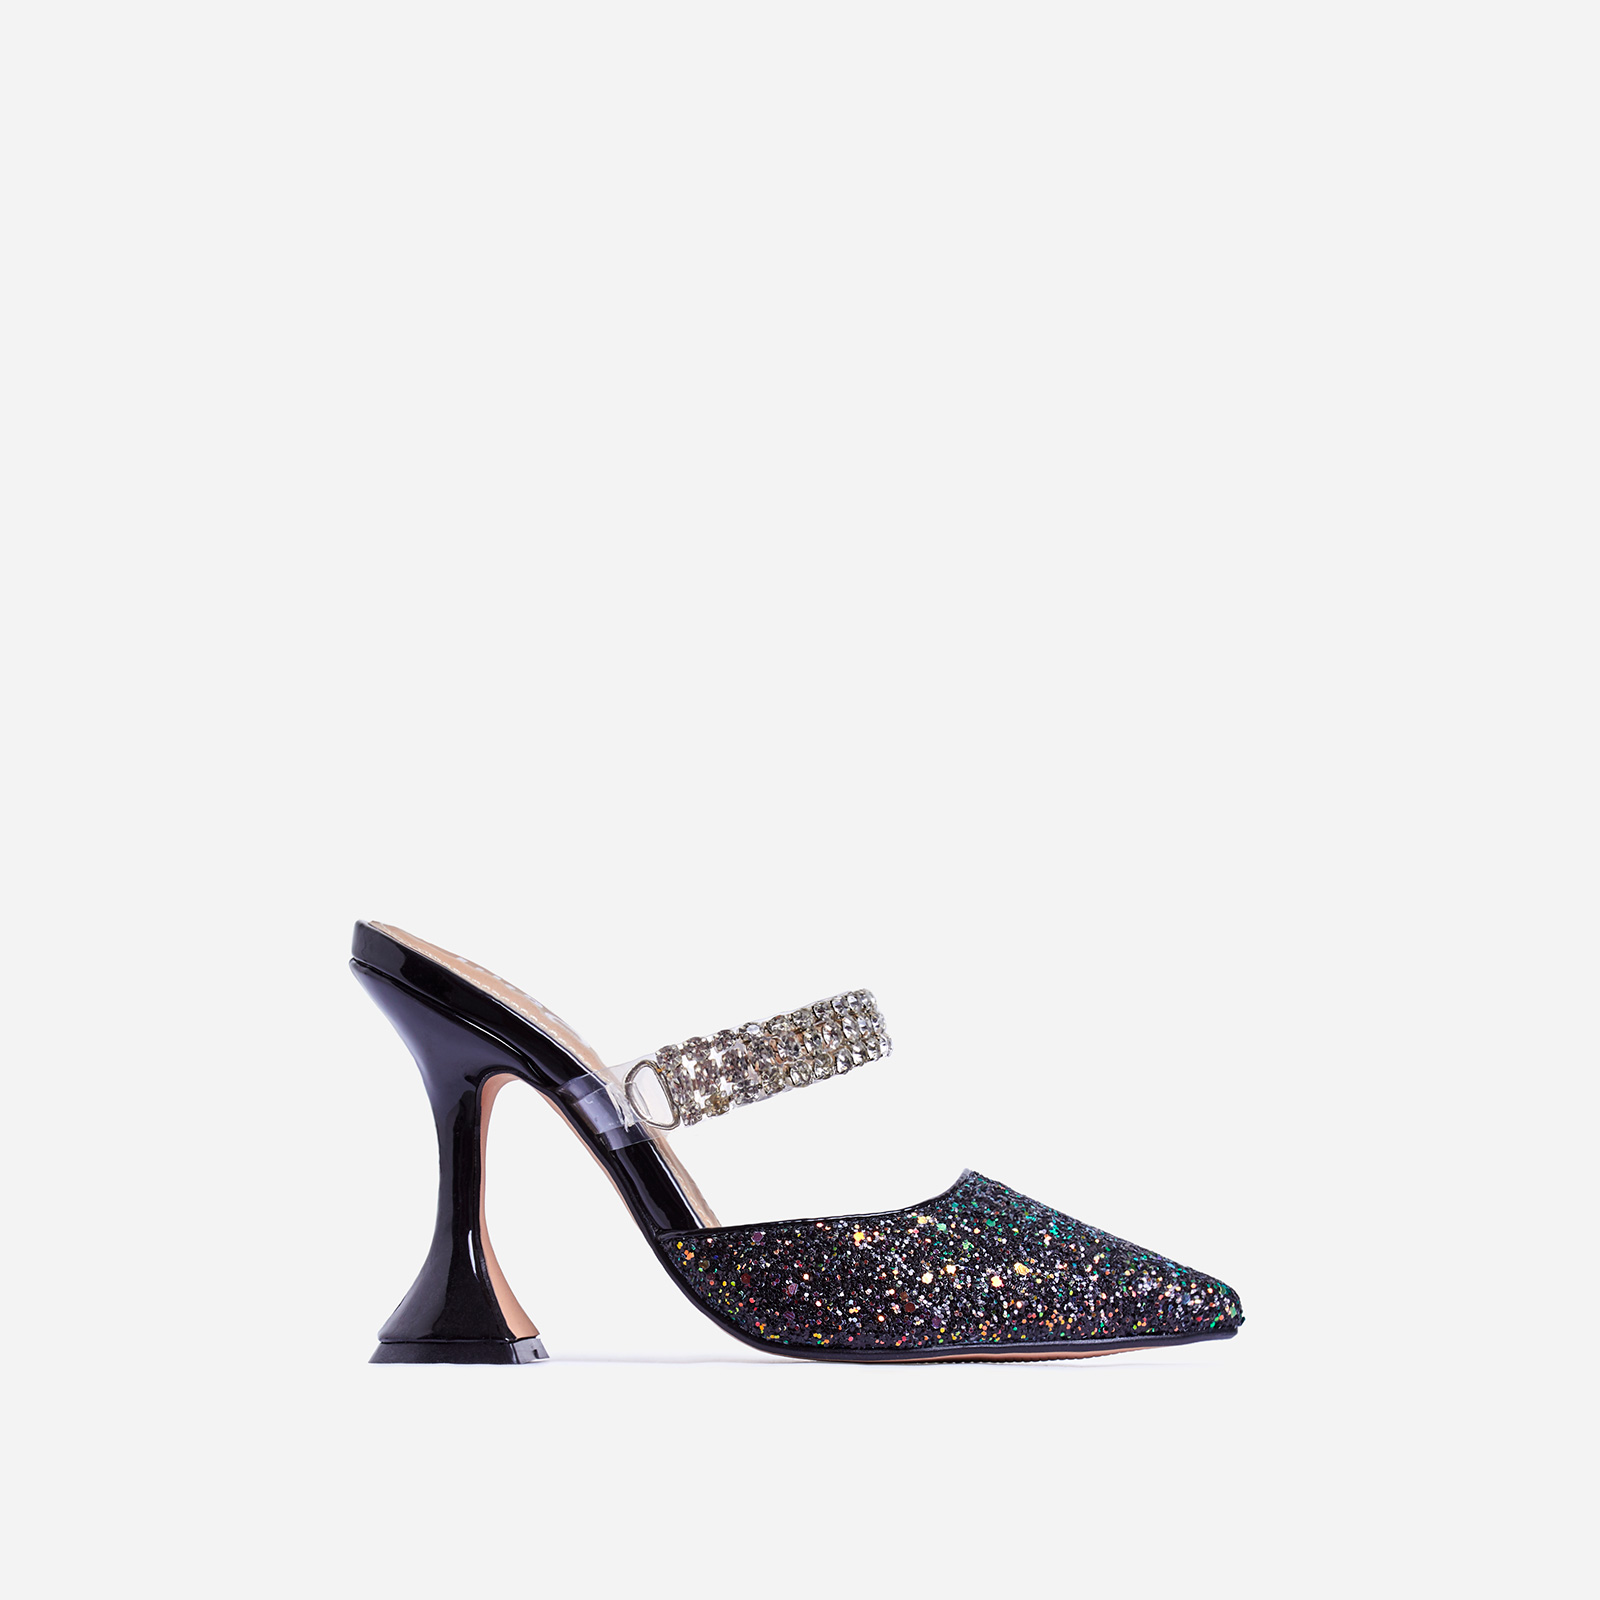 Spice Diamante Detail Pyramid Heel Mule In Black Glitter